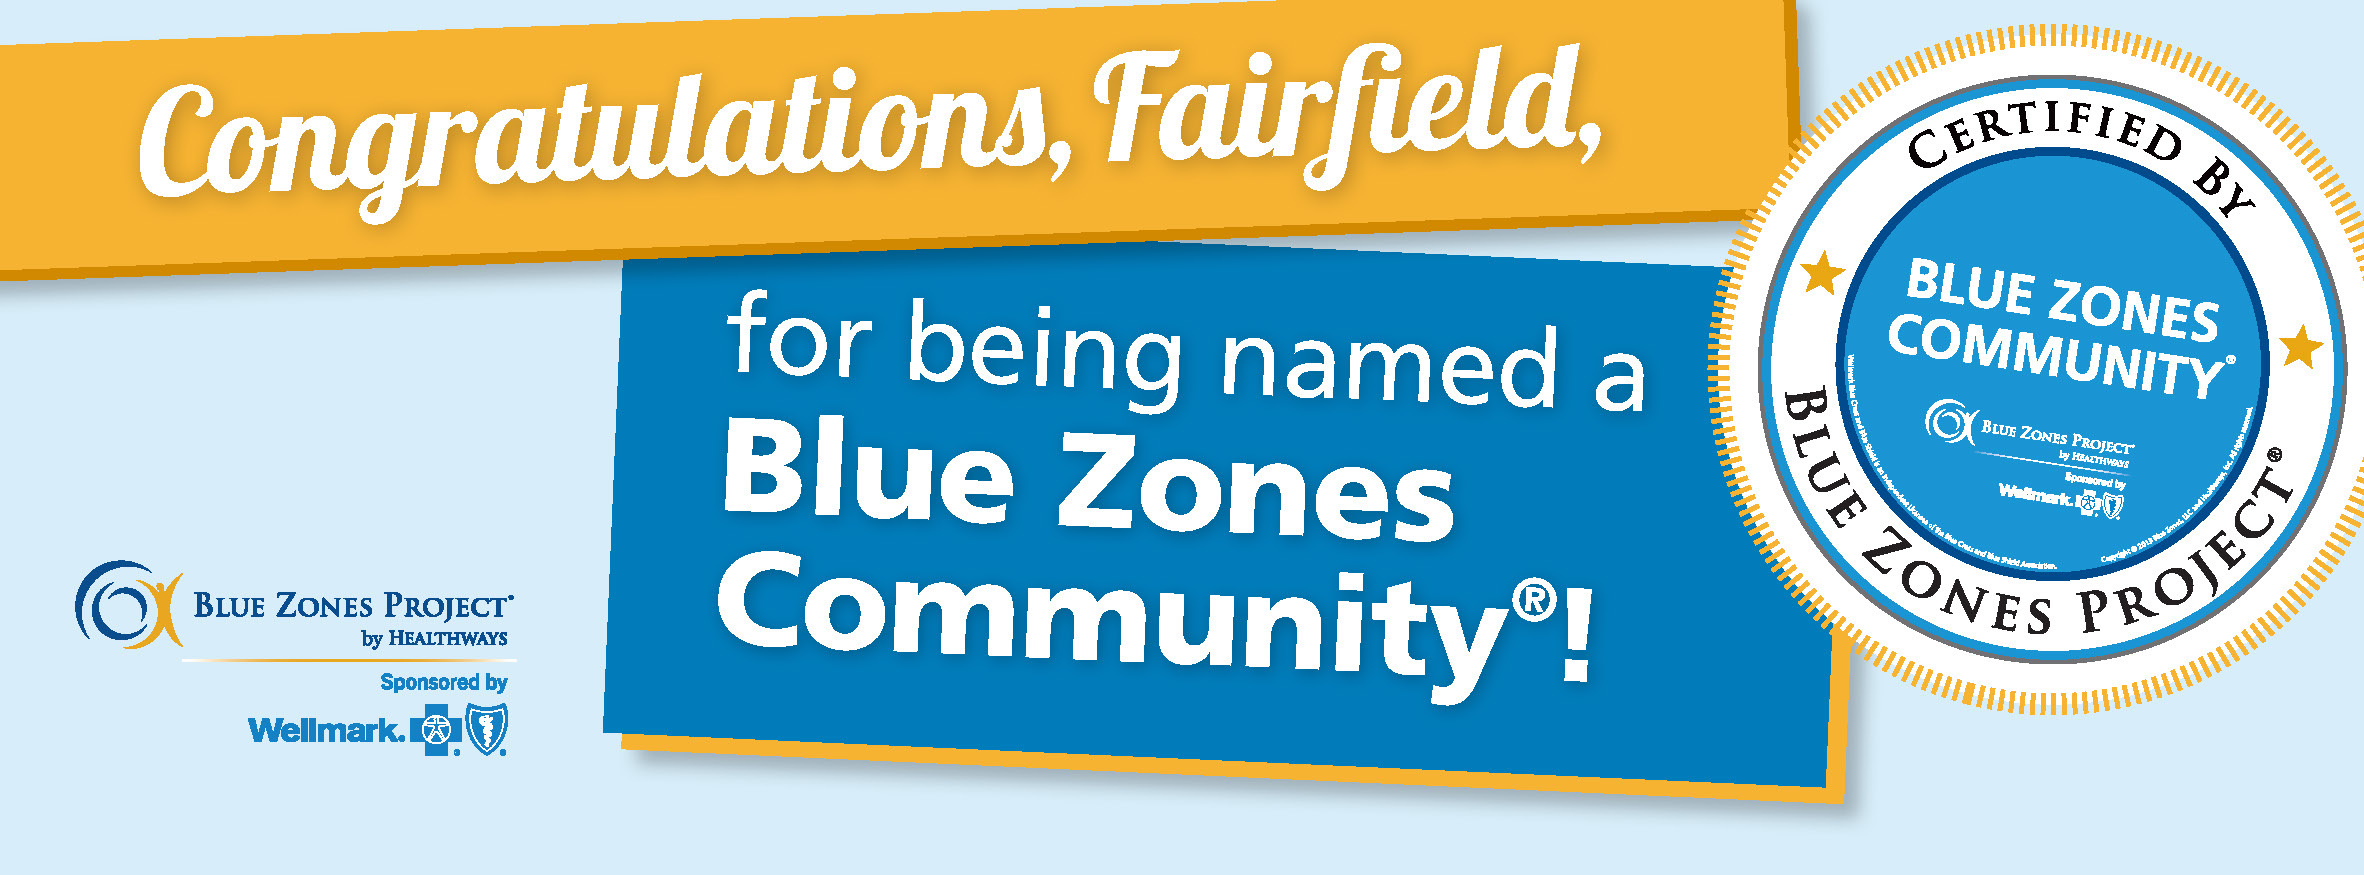 Fairfield BZ Certified